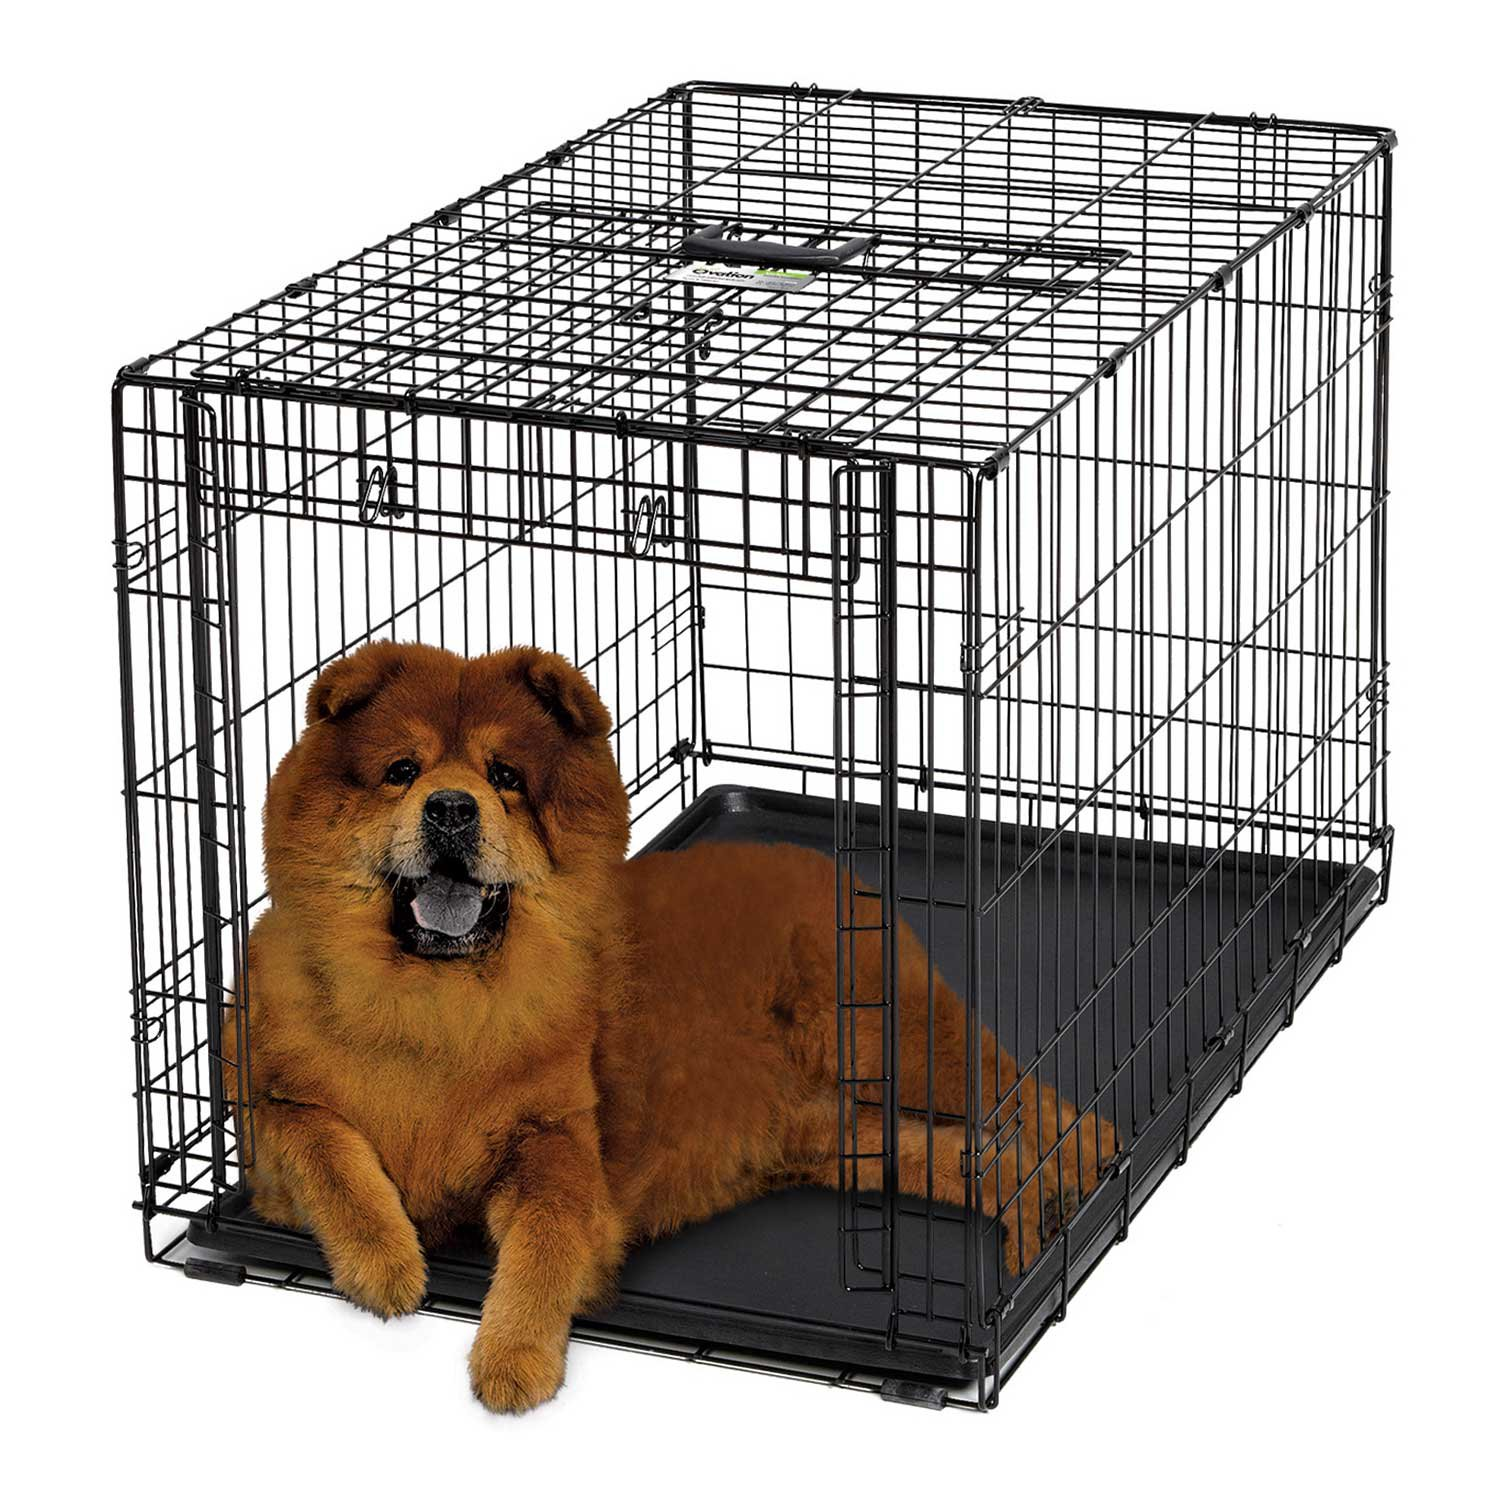 midwest ovation single door folding dog crate - Midwest Crates